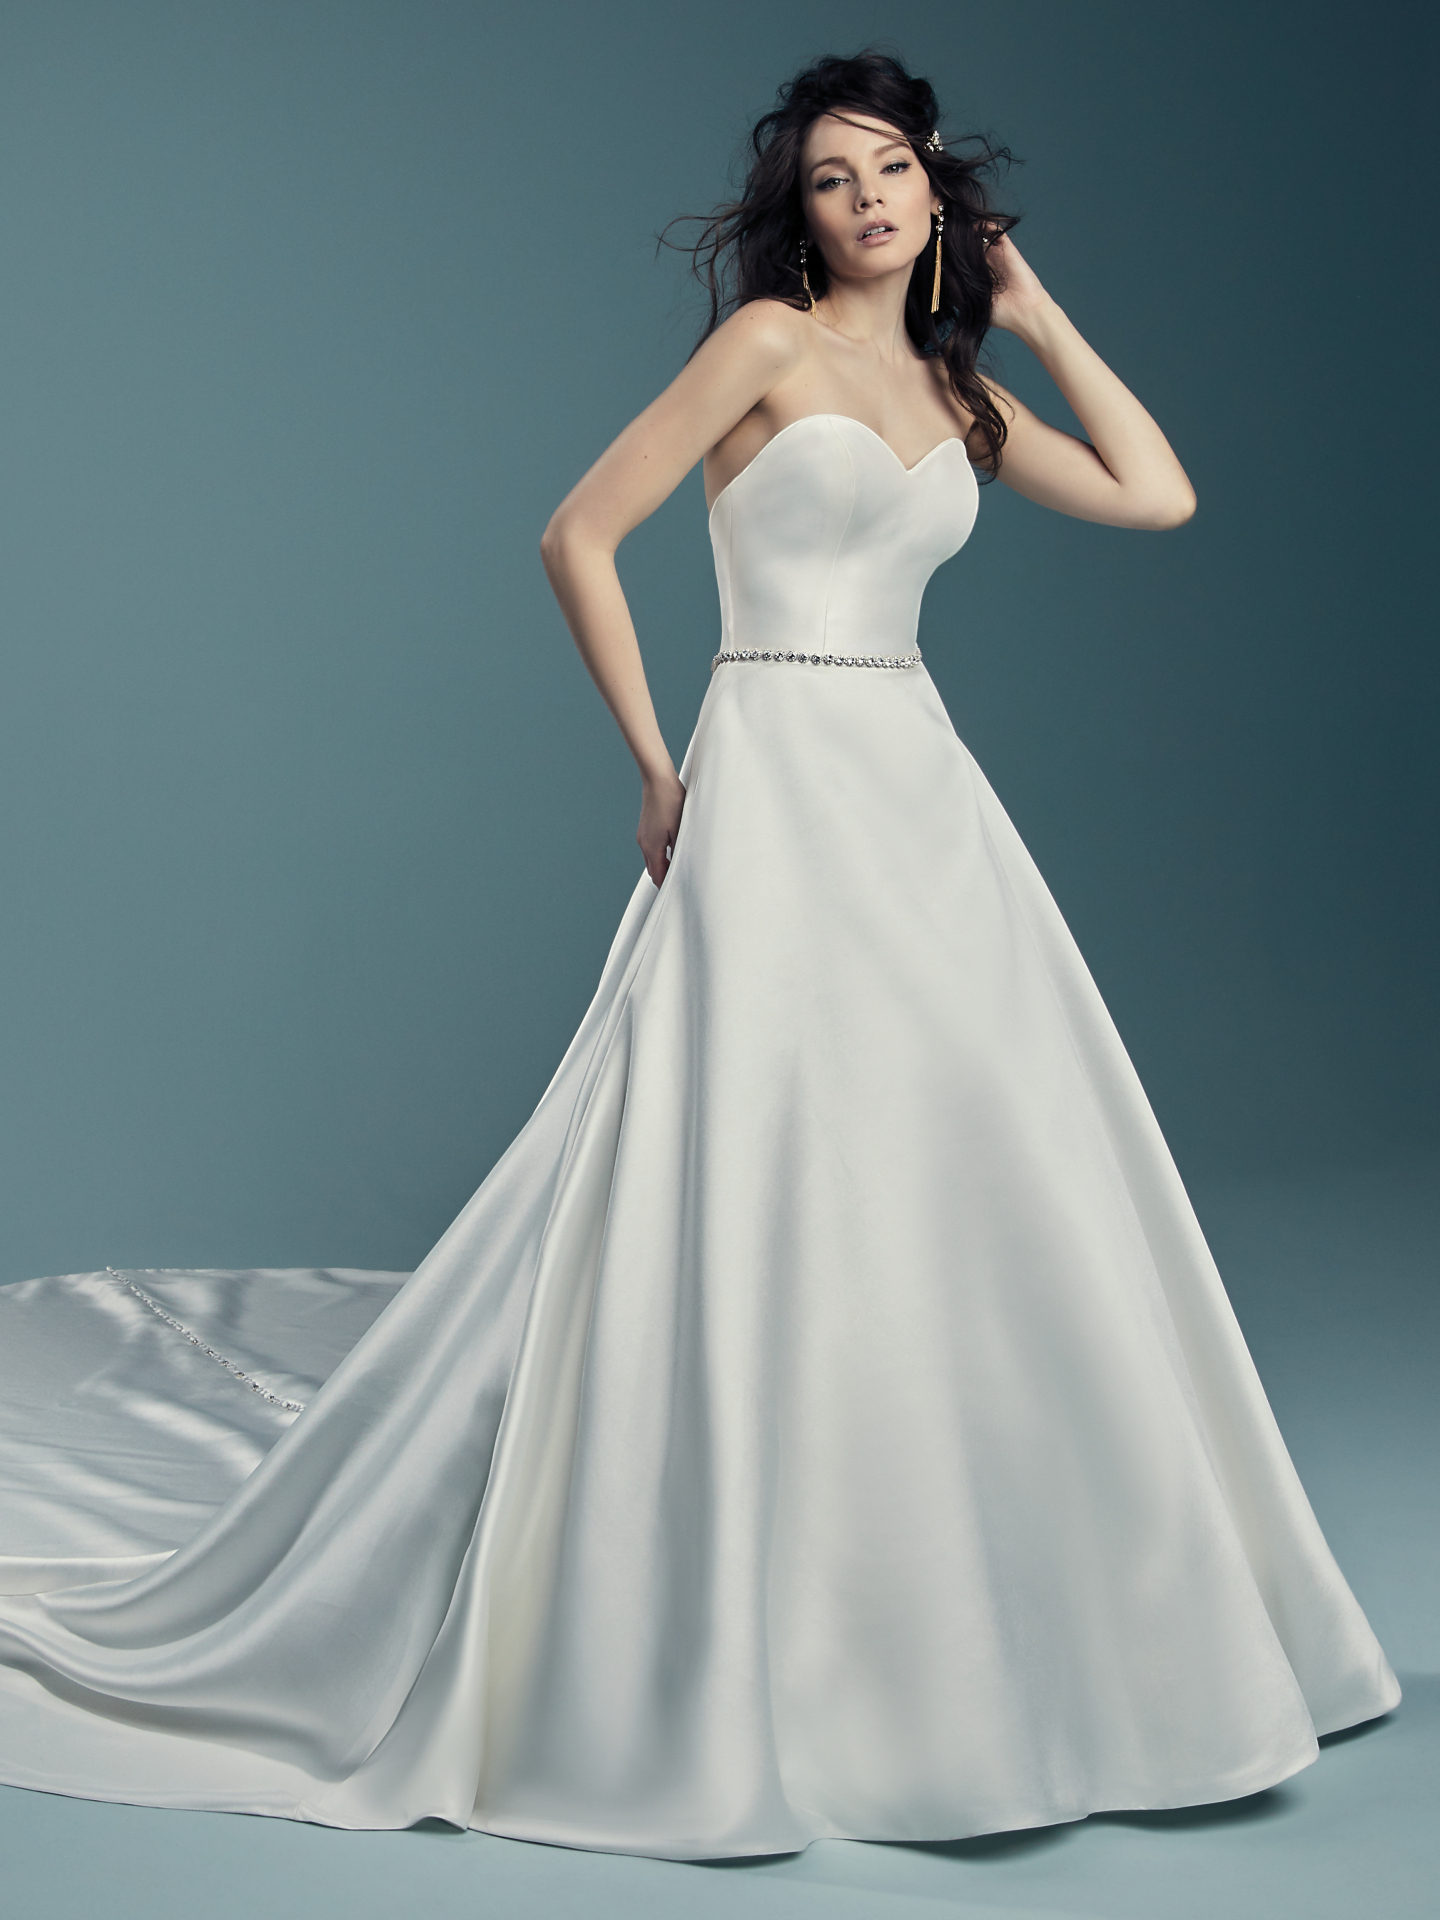 Your Wedding Day Horoscope Inspired by Pantone's Color of the Year - Benicia by Maggie Sottero